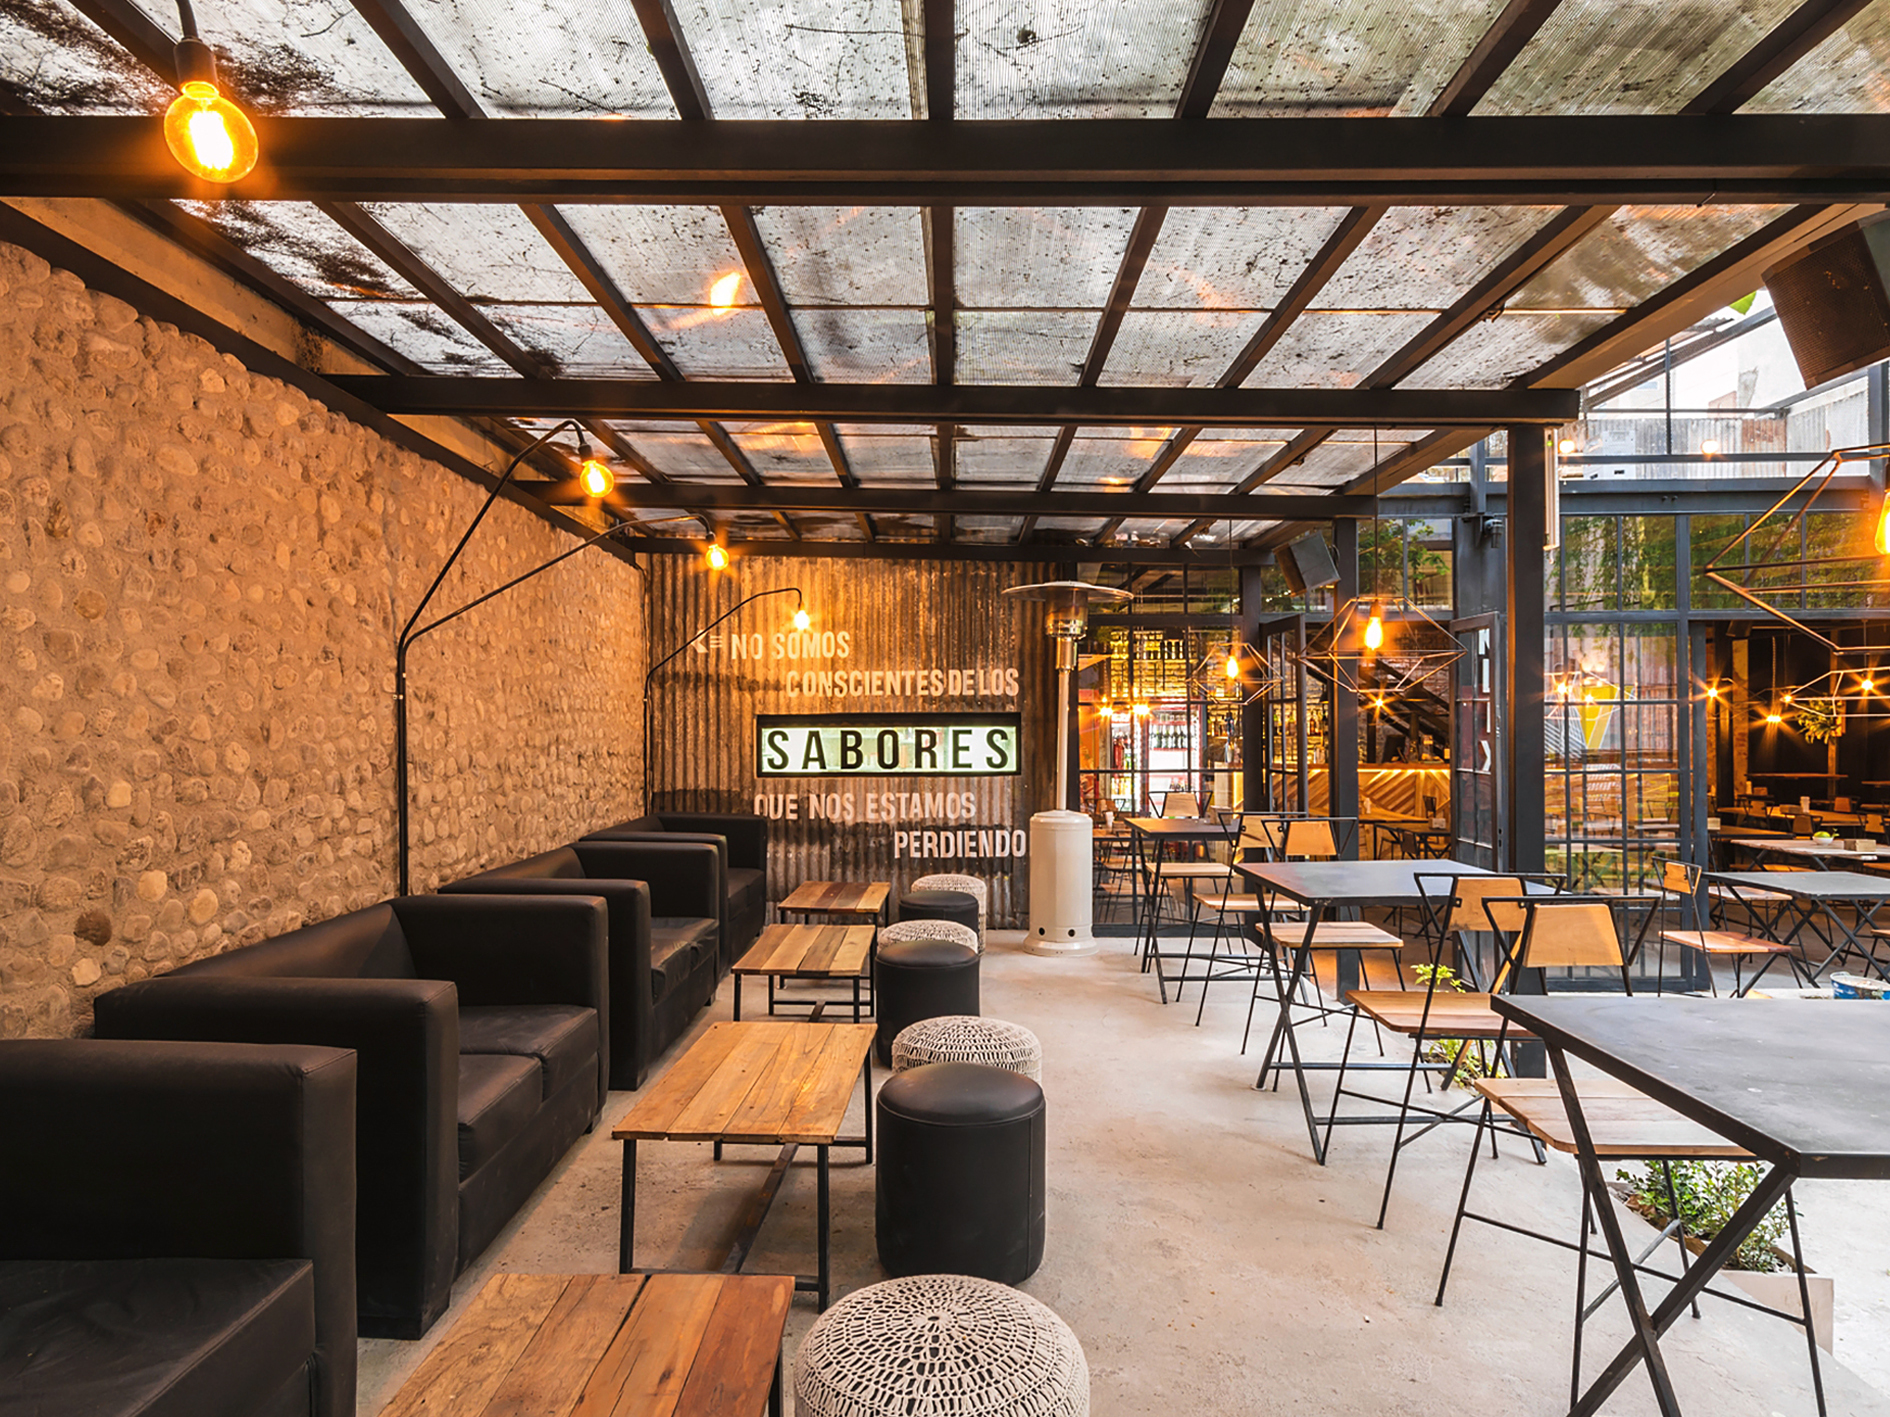 Gallery Of Restaurants Cafes And Bars In Argentina 20 Projects And Their Floor Plans 40